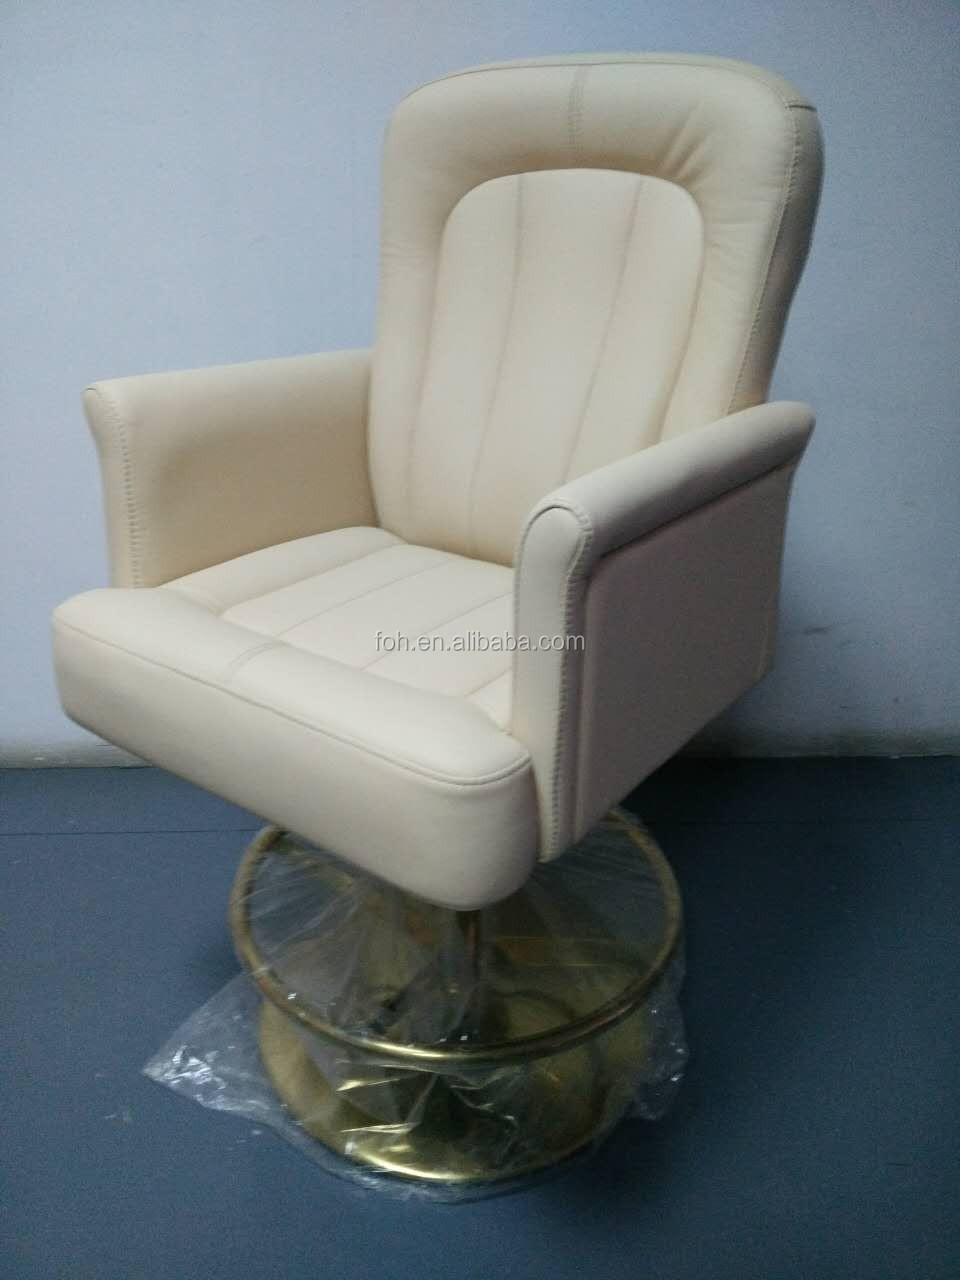 Beige white color Salon Chair Barber Chair Swivel for sale(FOH-F11-B06)